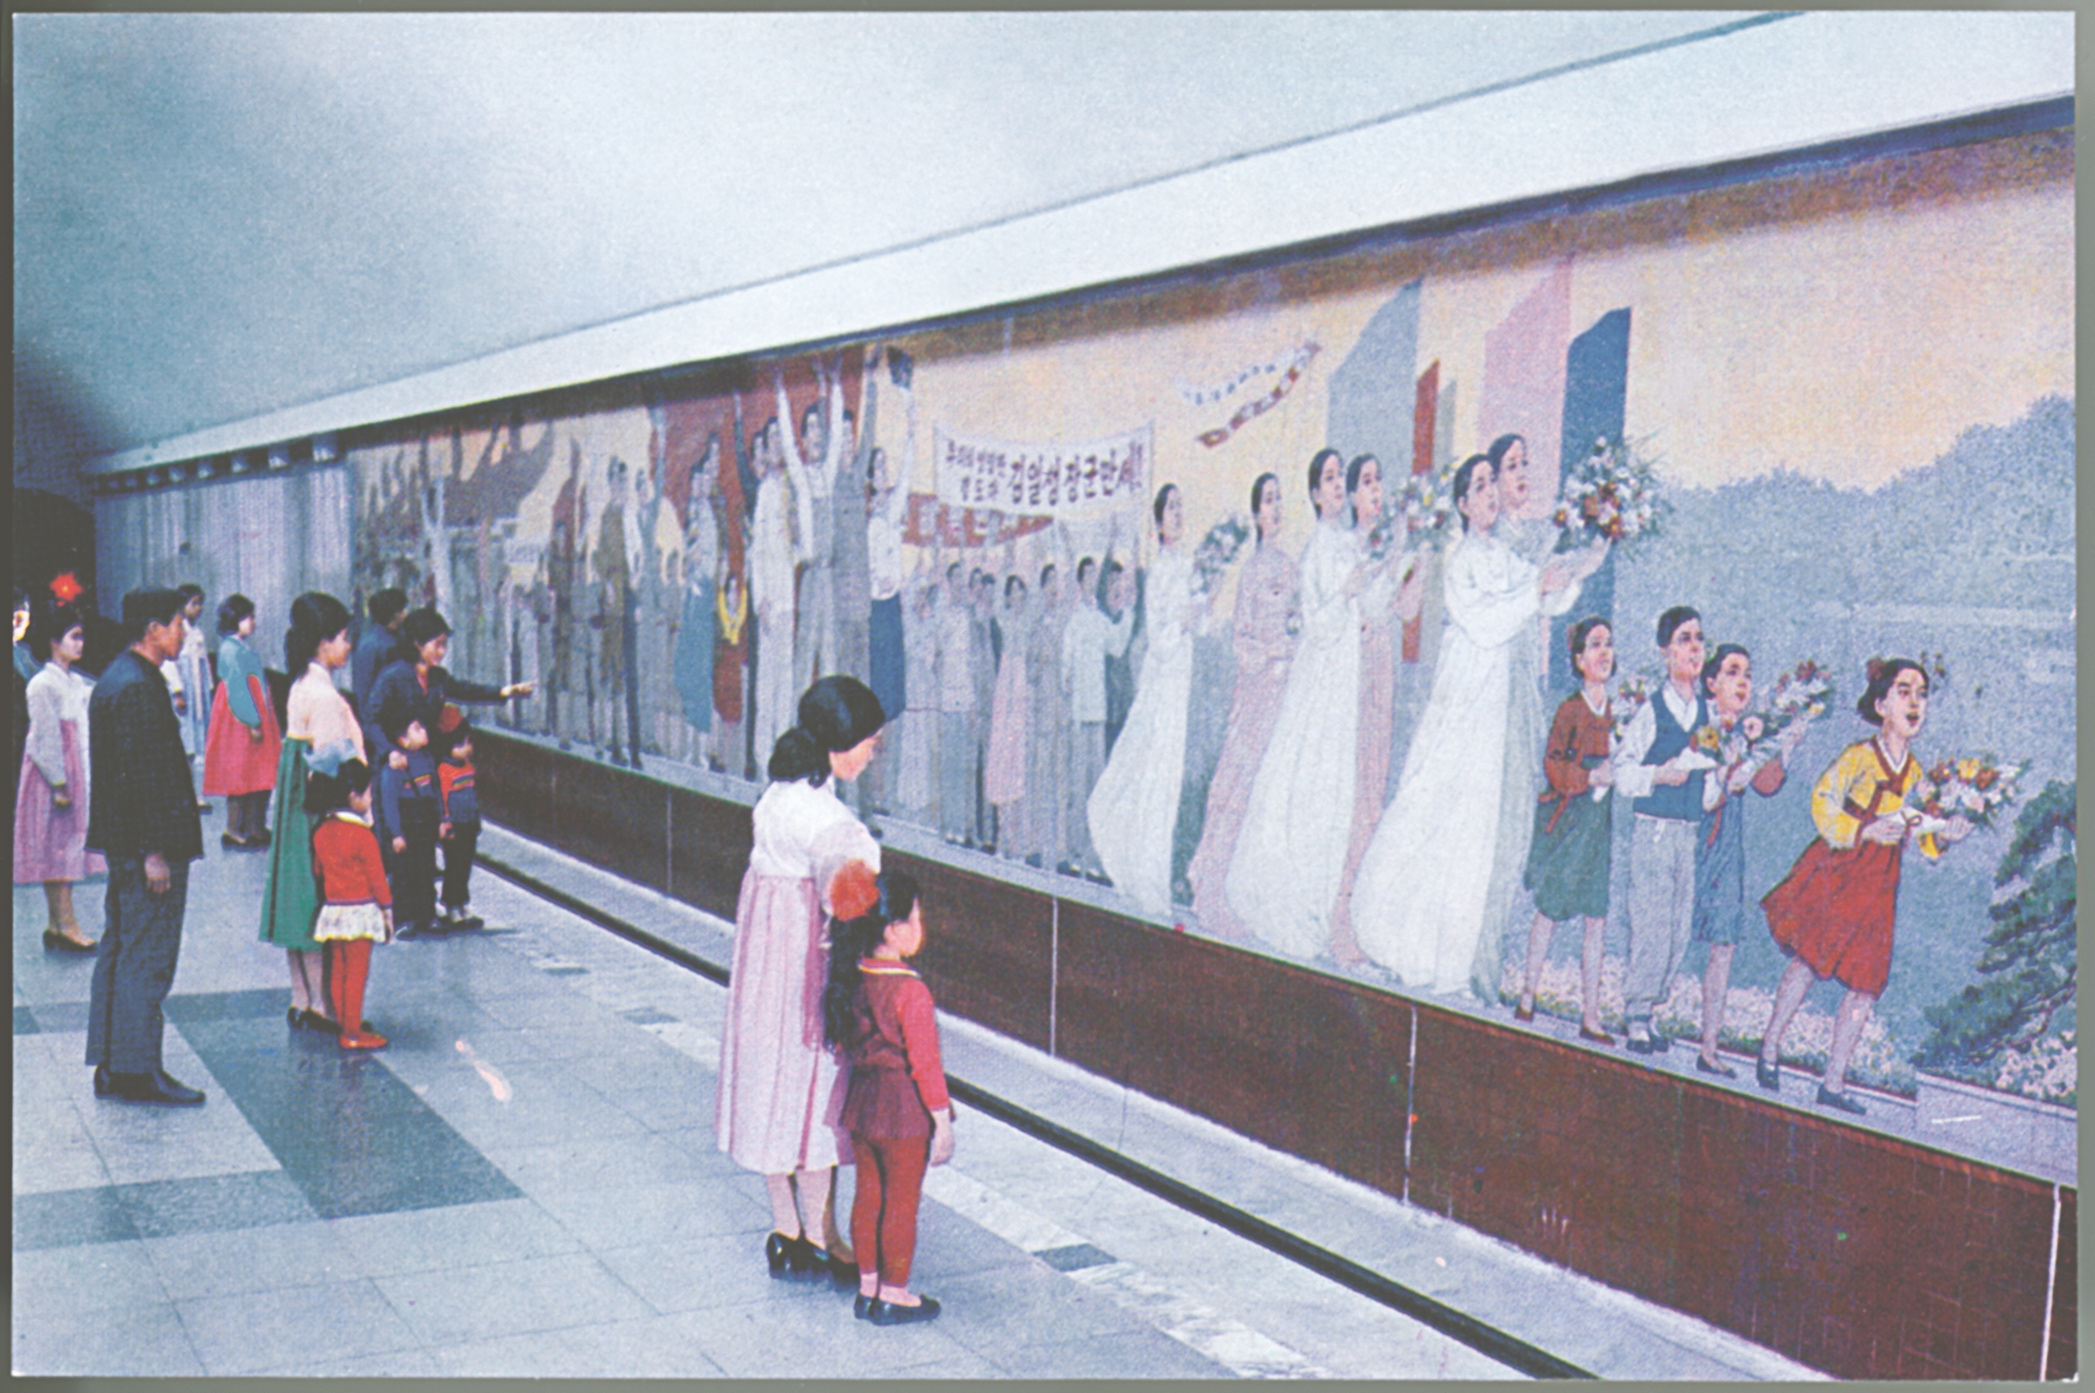 Card from a souvenir set of Pyongyang Metro postcards. In the 1990s and early 2000s there were rumours in the Western press that graffiti was being etched on to the windows of the Pyongyang Metro carriages. In fact, the carriages had been imported second-hand from West Berlin and the graffiti (impossible to remove from glass) was therefore in German.